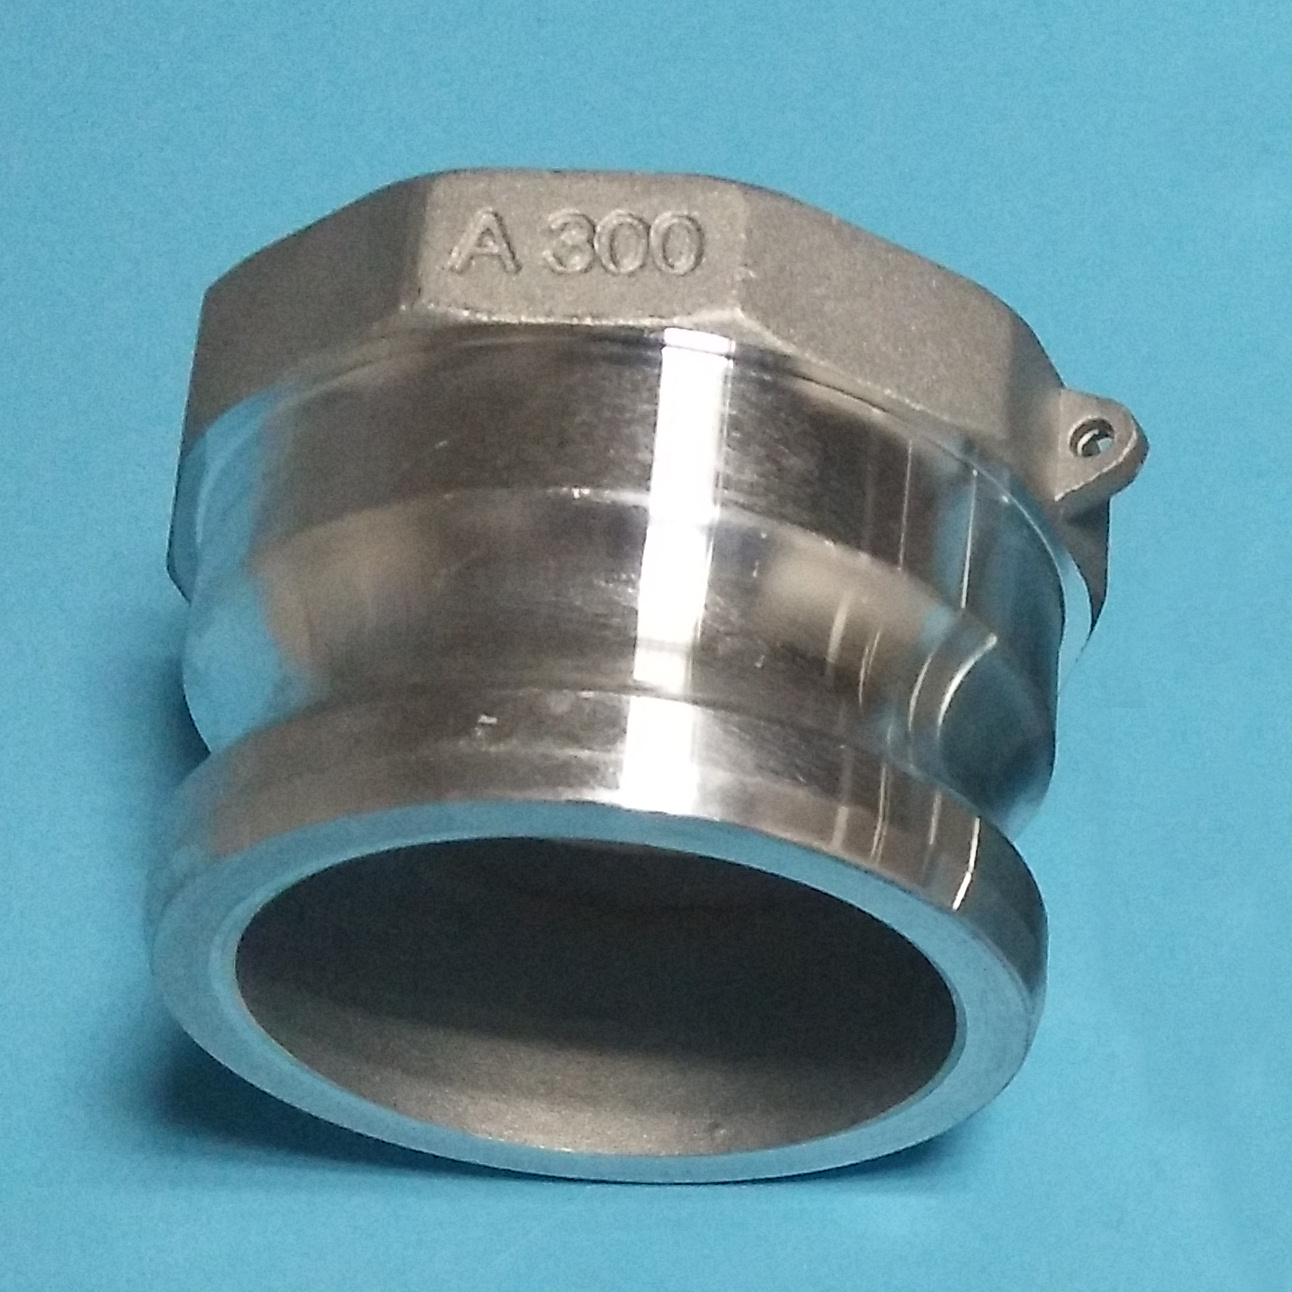 Type -A-300-Female Thread, Male Adapter